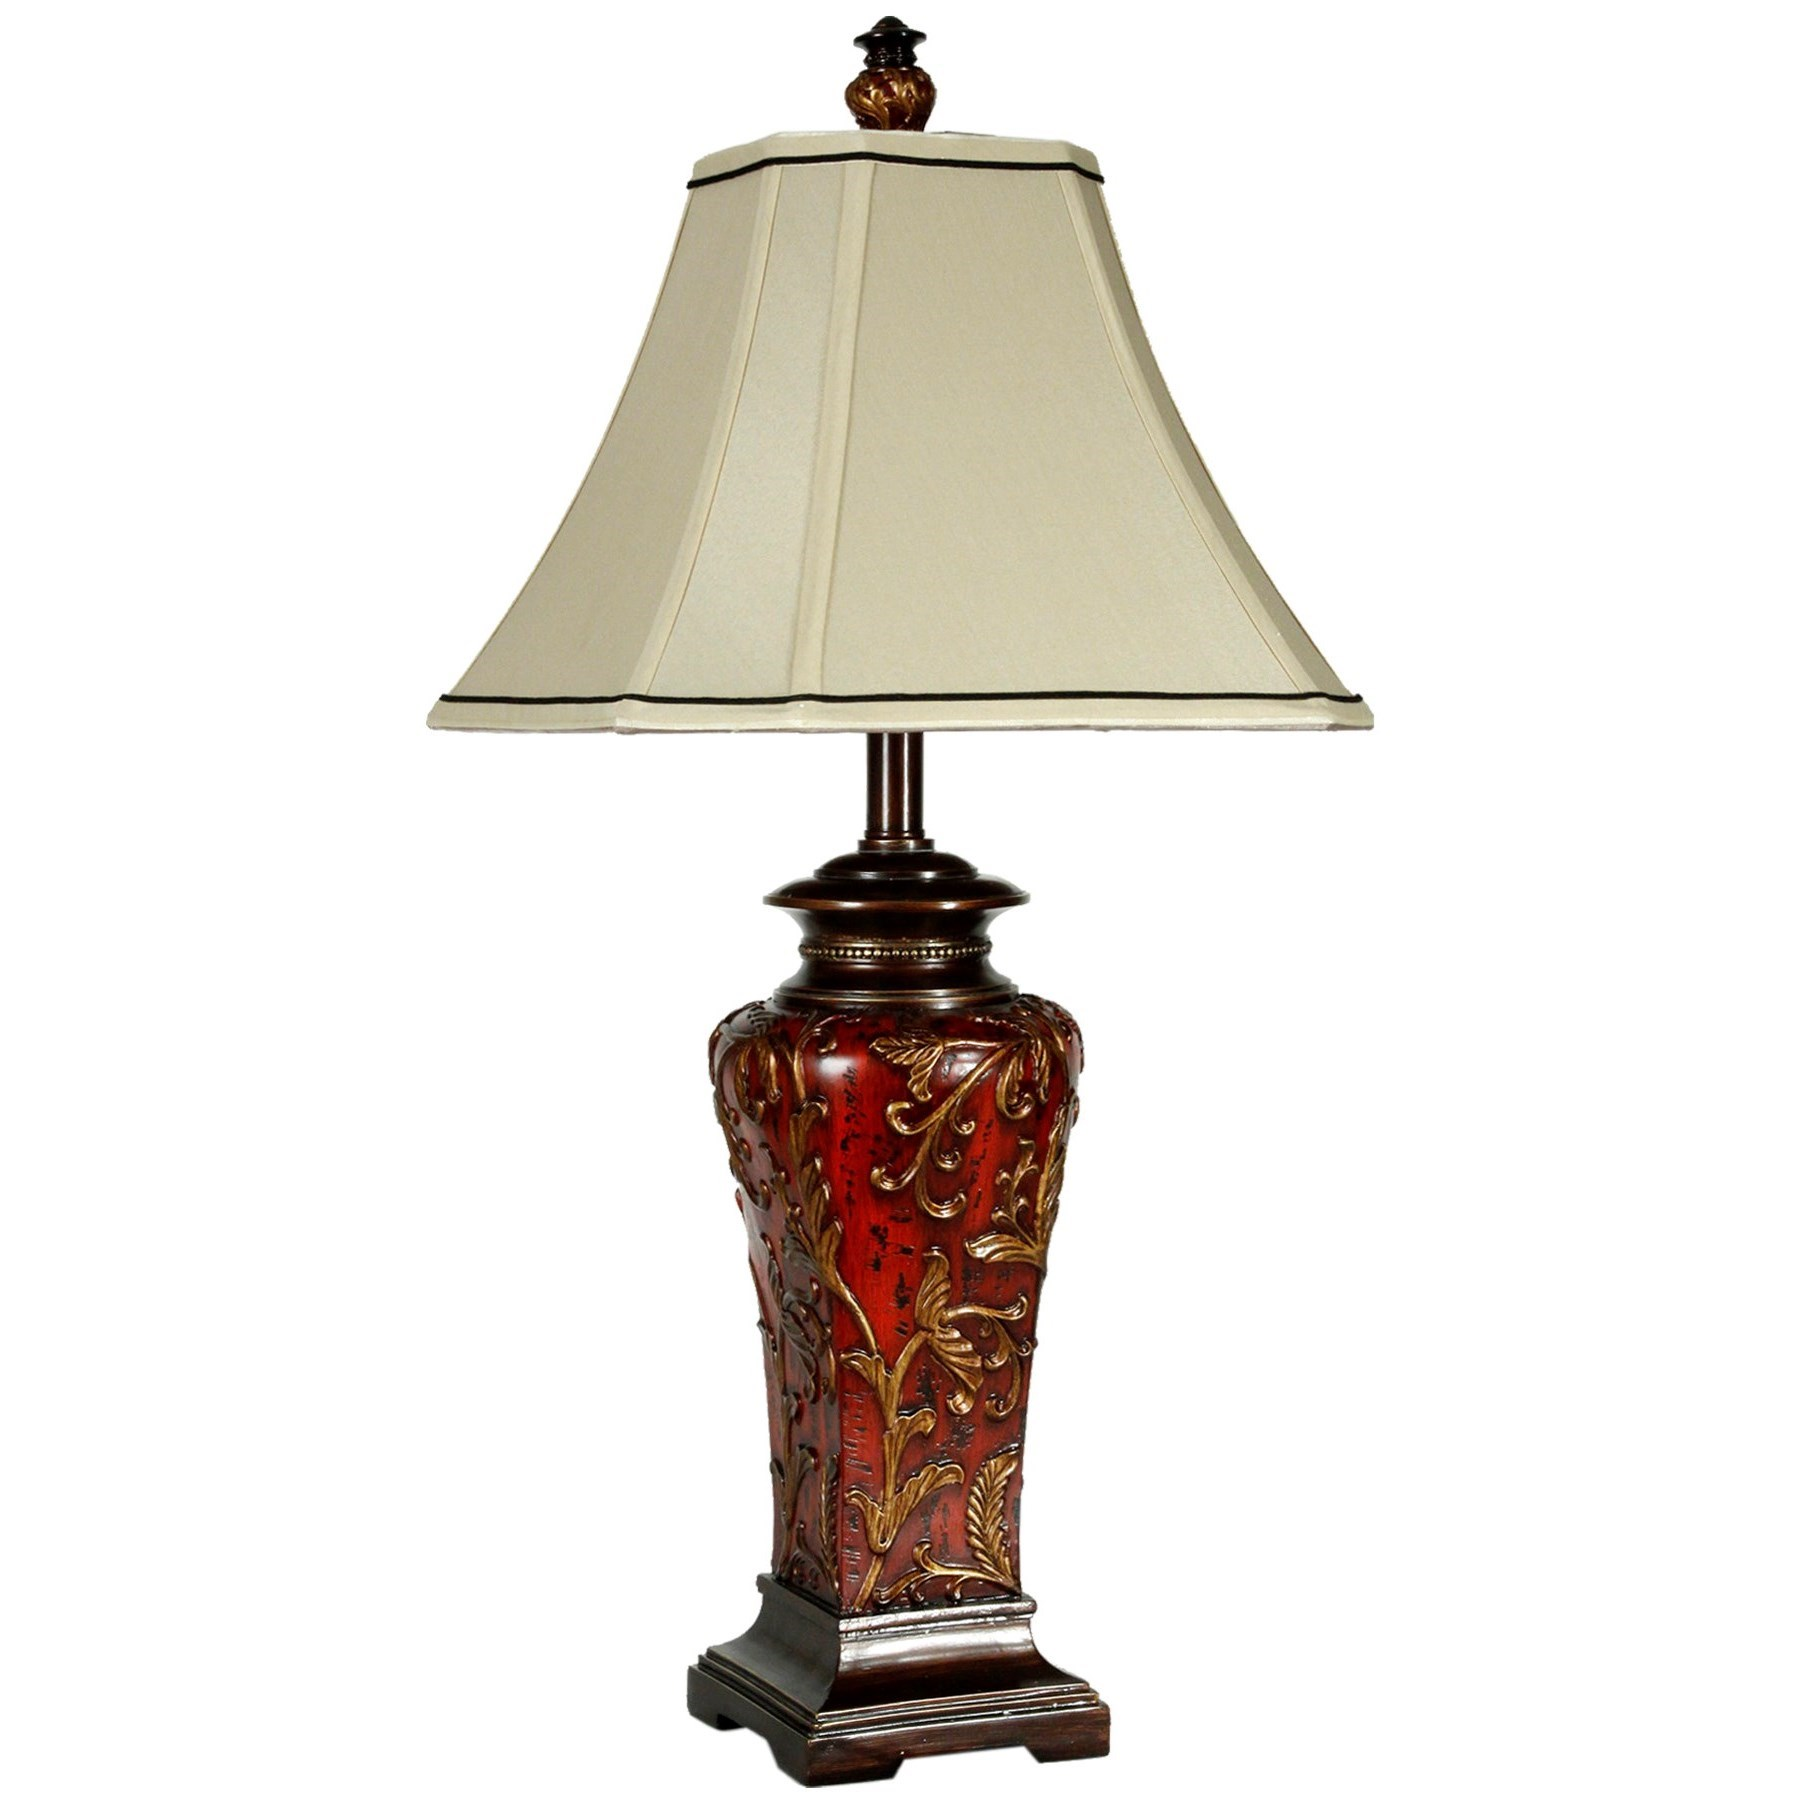 Lamps Crimson Floral Zoey Table Lamp by StyleCraft at Alison Craig Home Furnishings